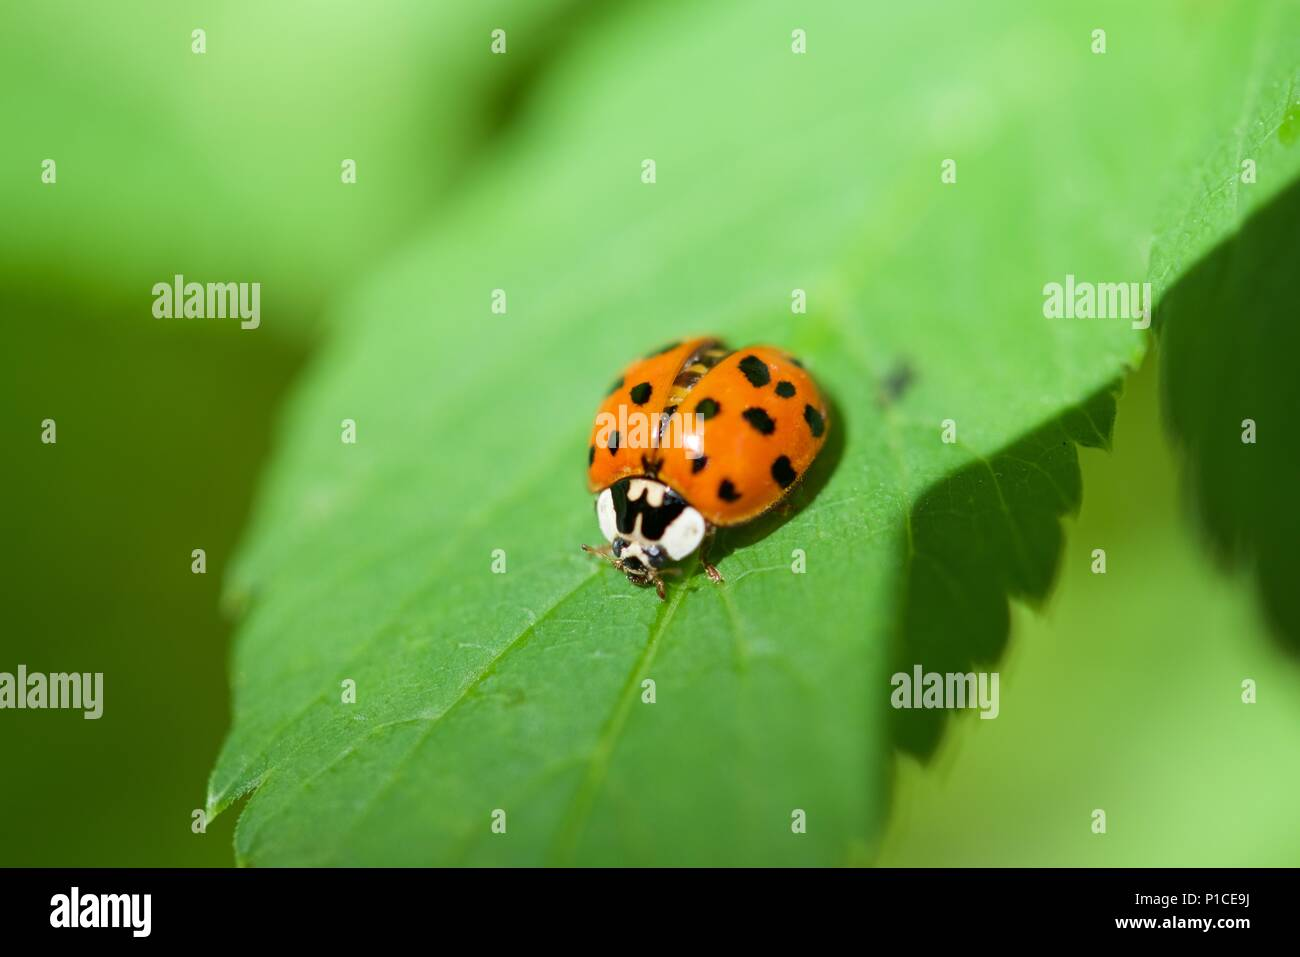 Ladybird (Coccinellidae): close up of a ladybird, or ladybug, on a leaf with serrated edges - Stock Image